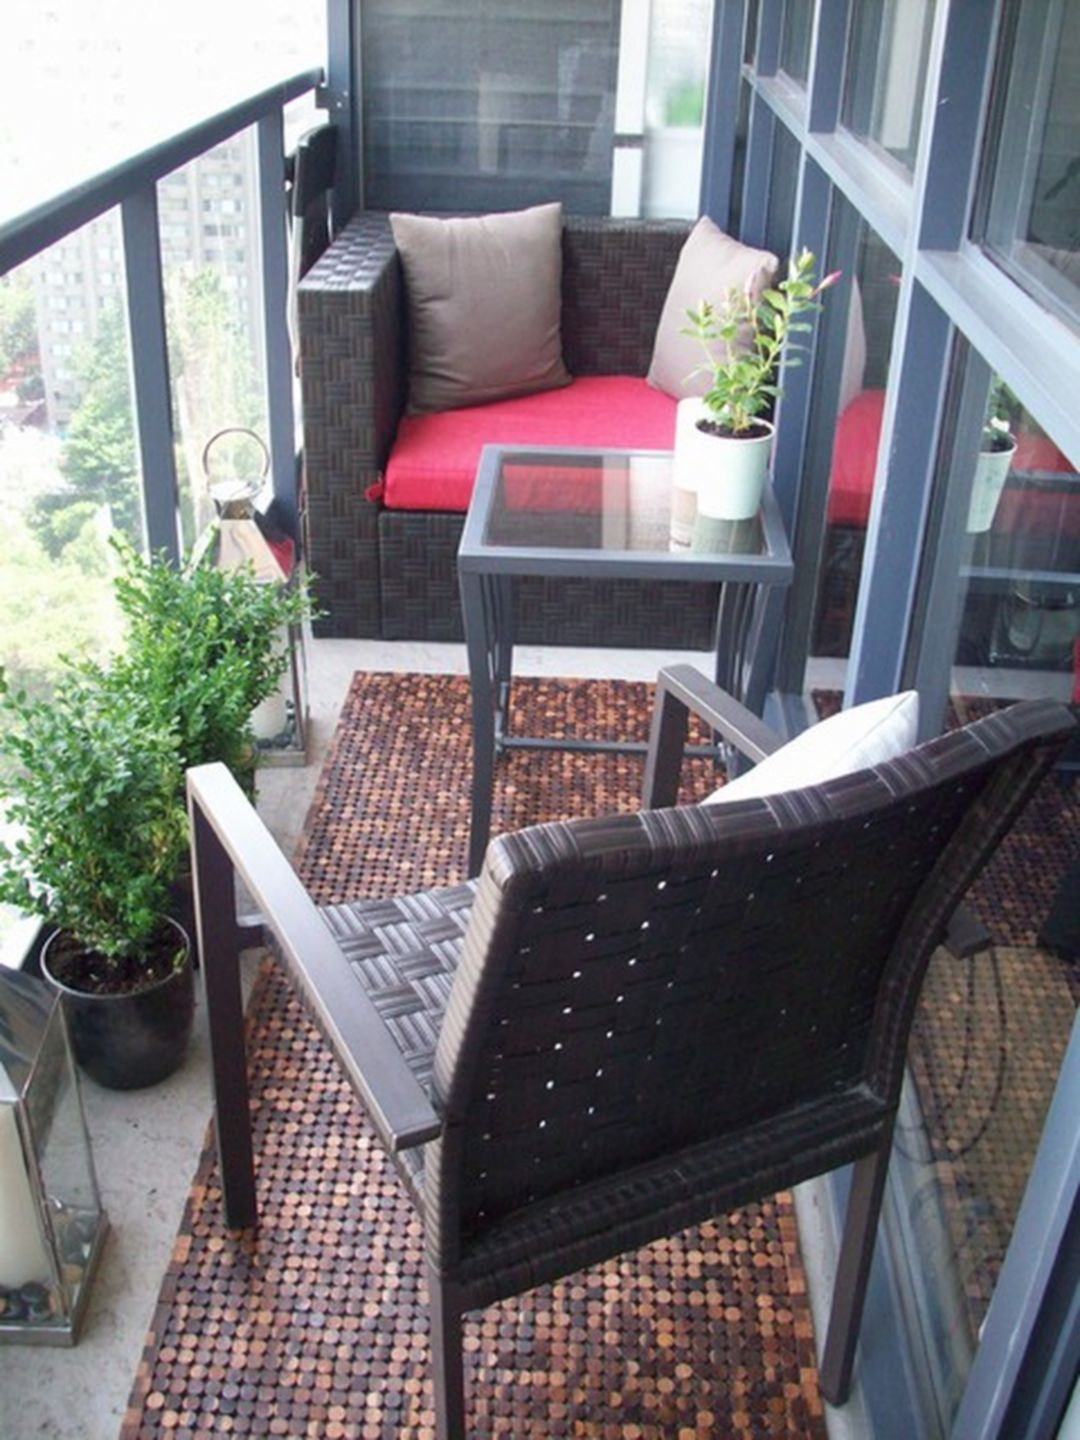 Small Apartment Balcony Garden Ideas: Wonderful 35+ Small Condo Patio Design Ideas To Inspire